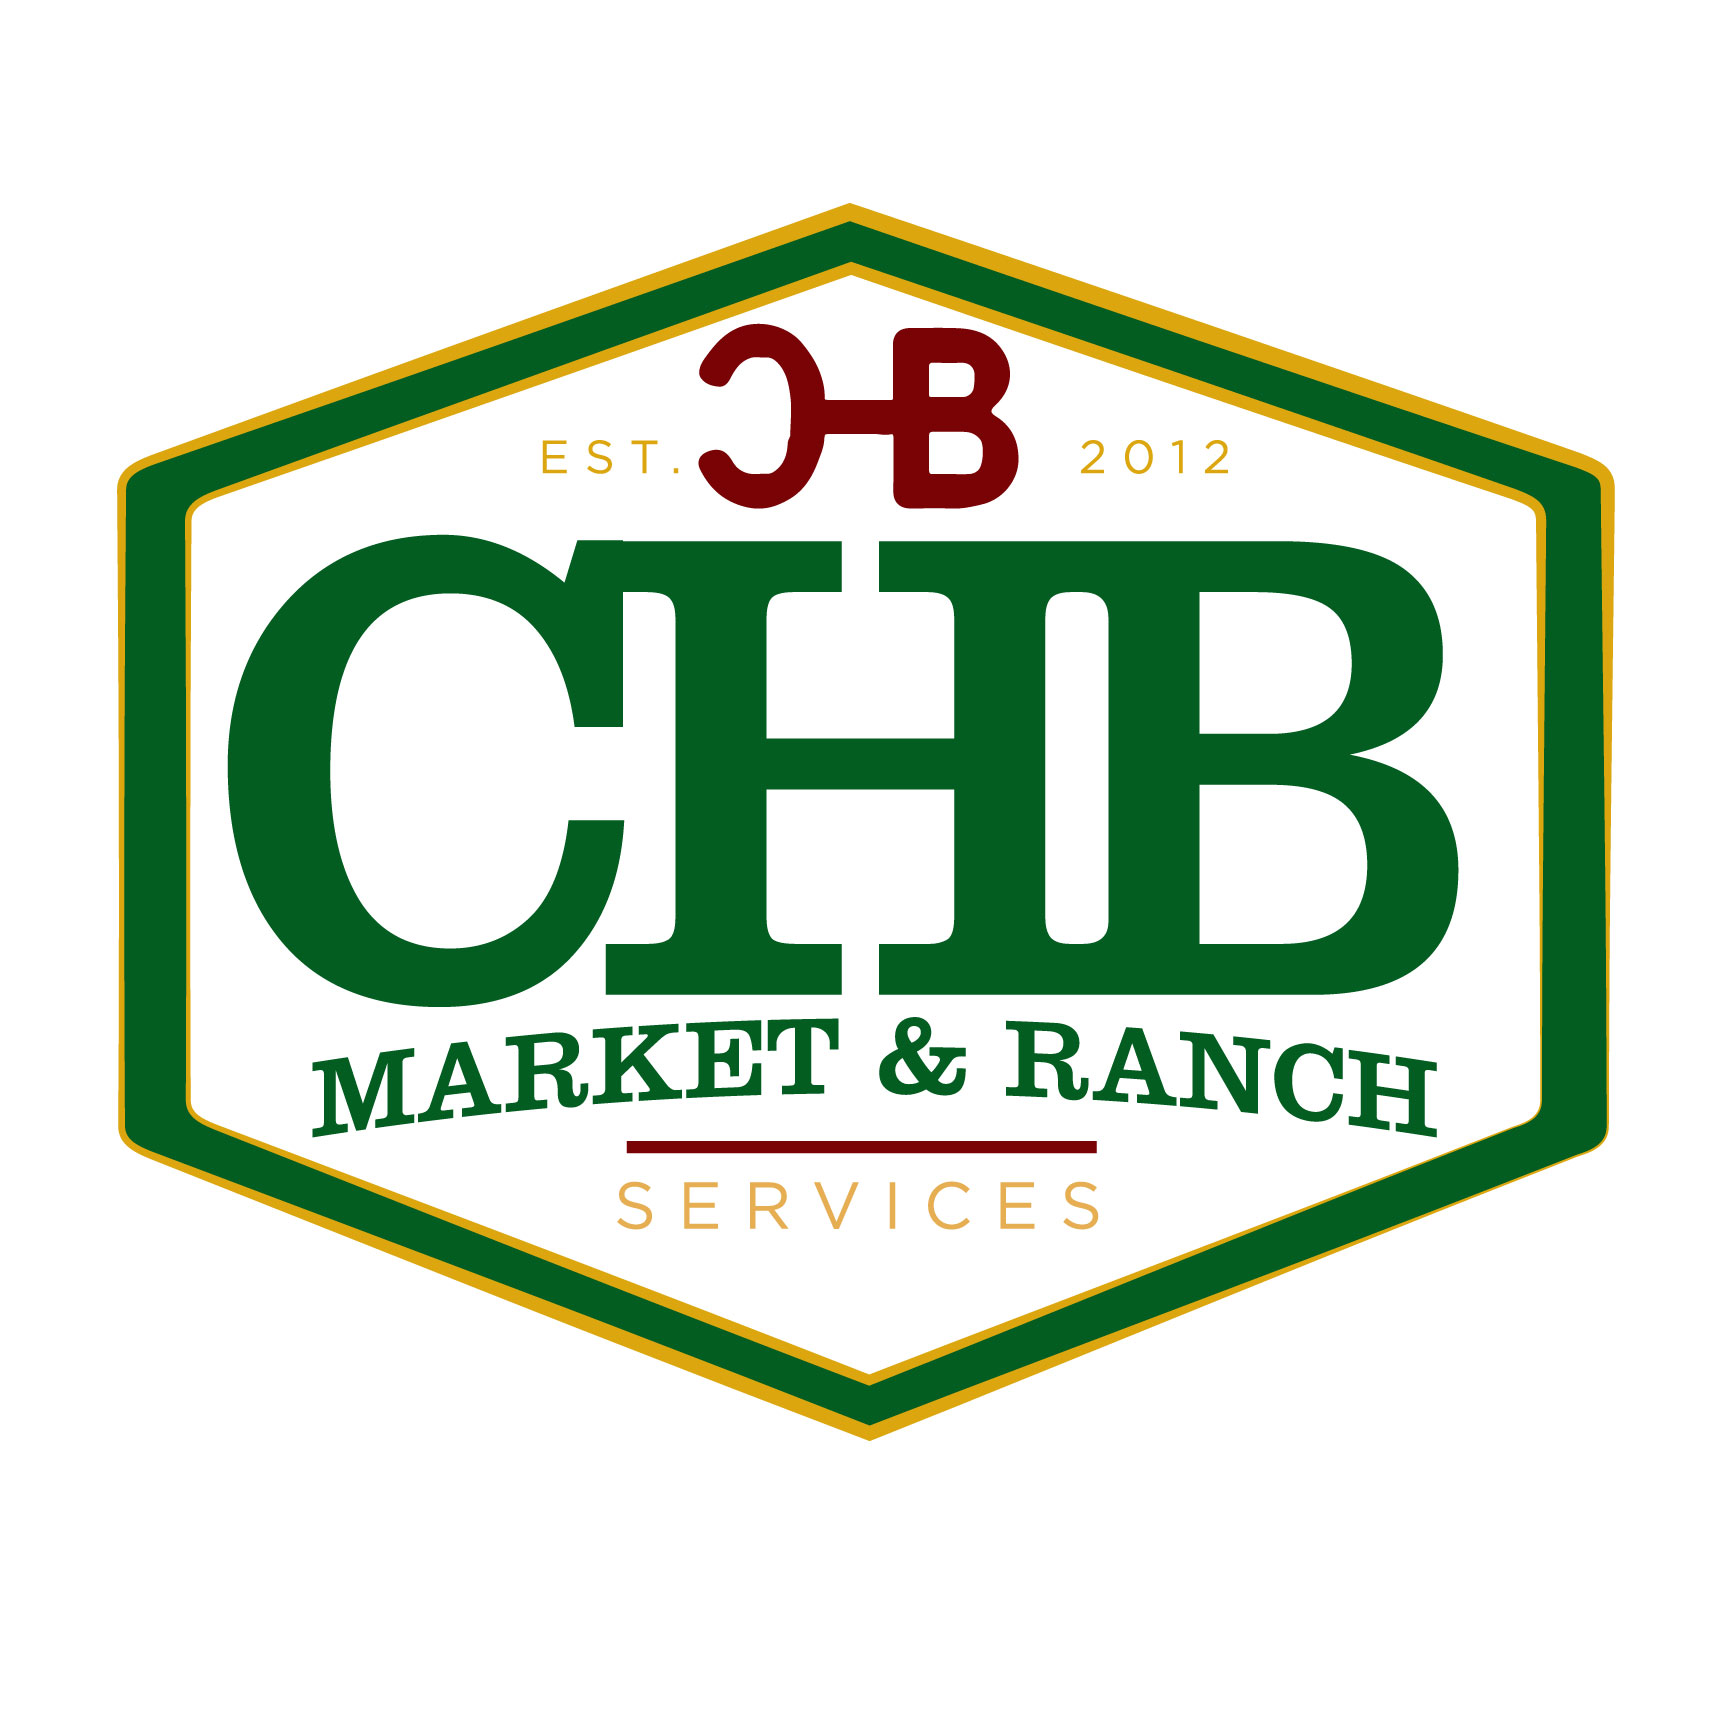 CHB green logo